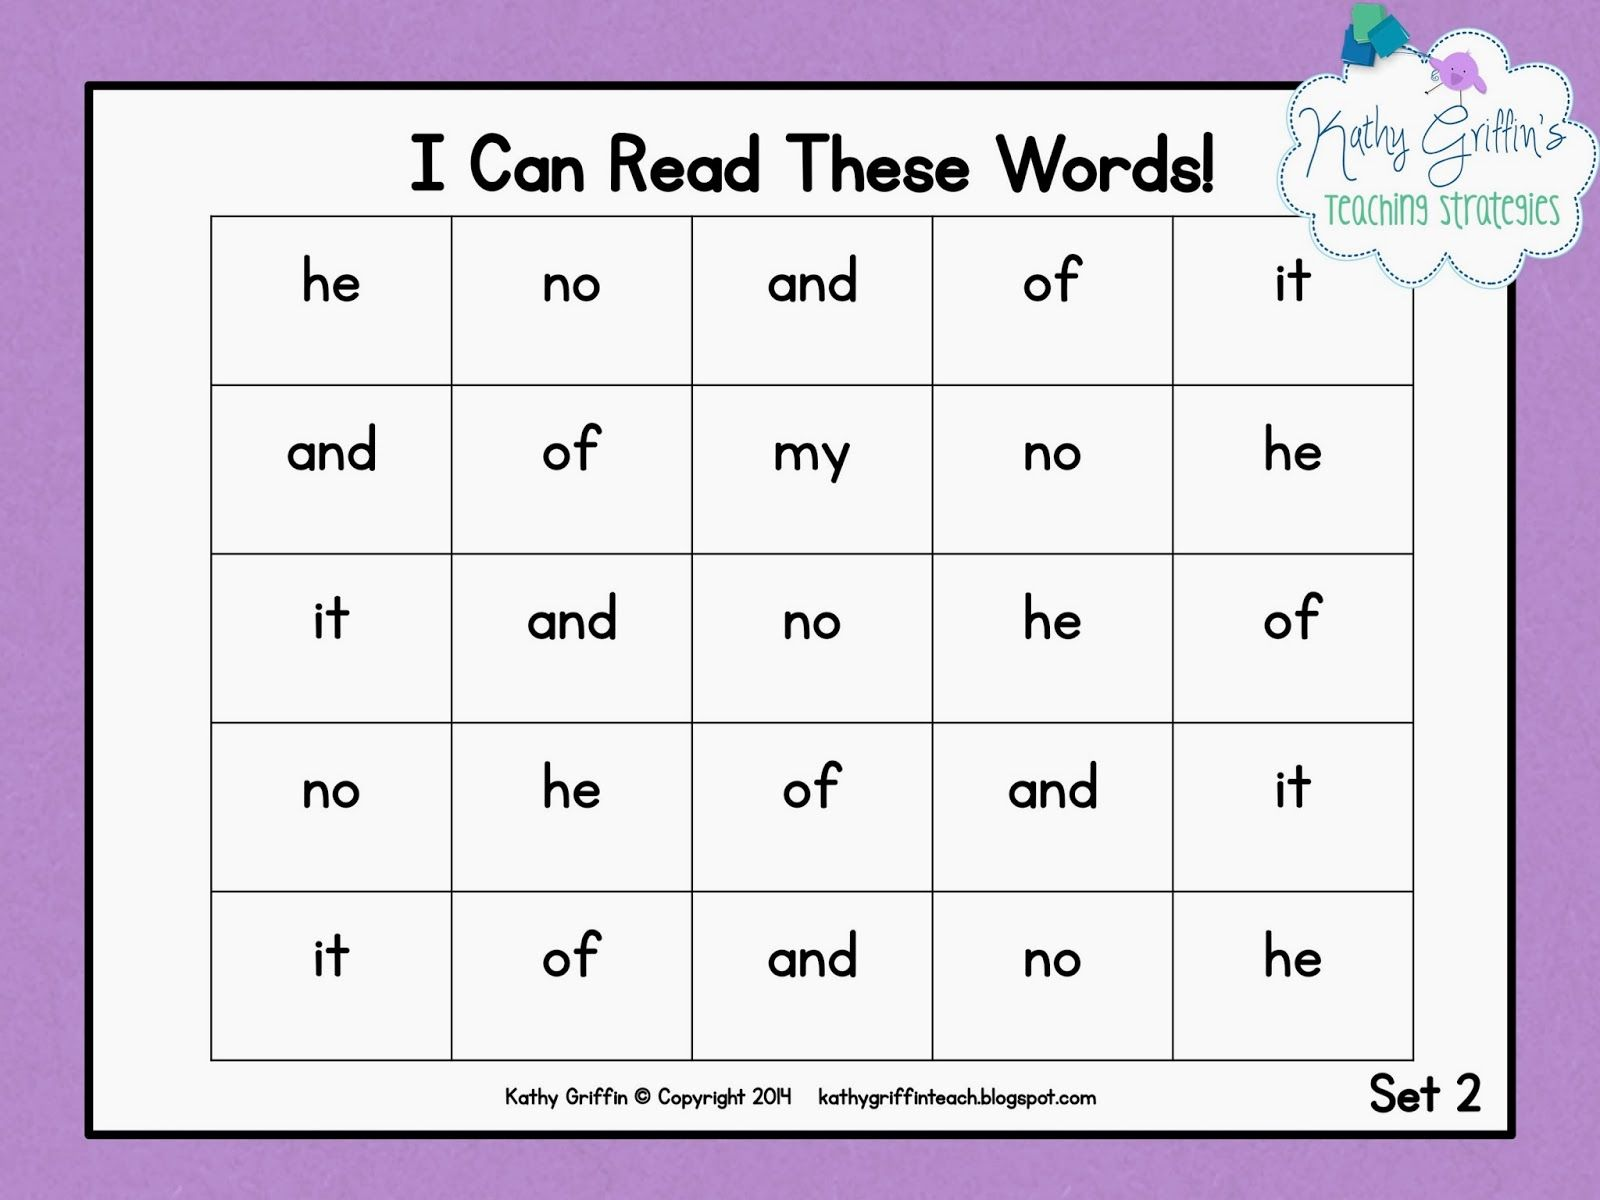 Take The Words From Your Favorite Stories And Make Rapid Word Sight Word Reading Charts To Help